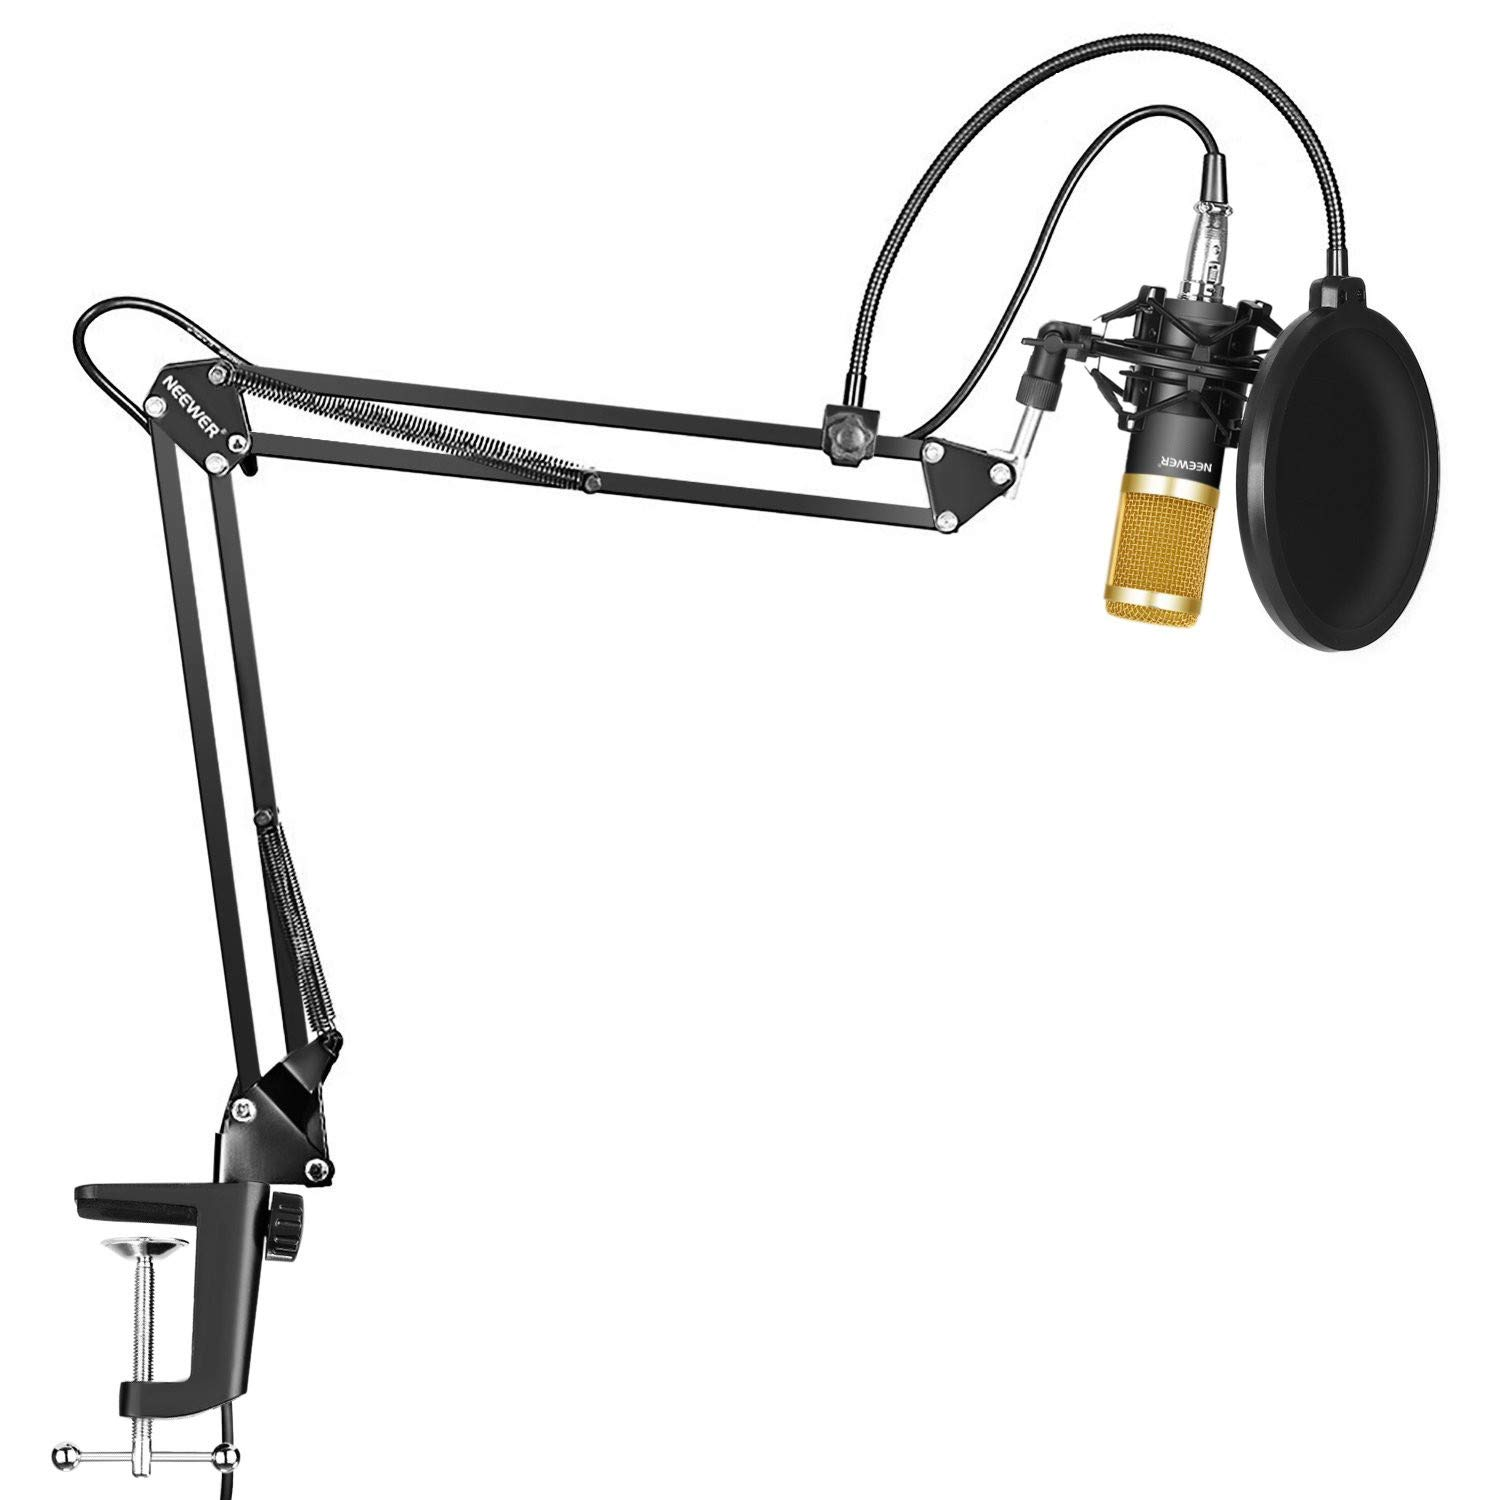 YSINOBEAR Professional Studio Broadcasting Recording Condenser Microphone & NW- 35 Adjustable Recording Microphone Suspension Scissor Arm Stand with Shock Mount and Mounting Clamp Kit